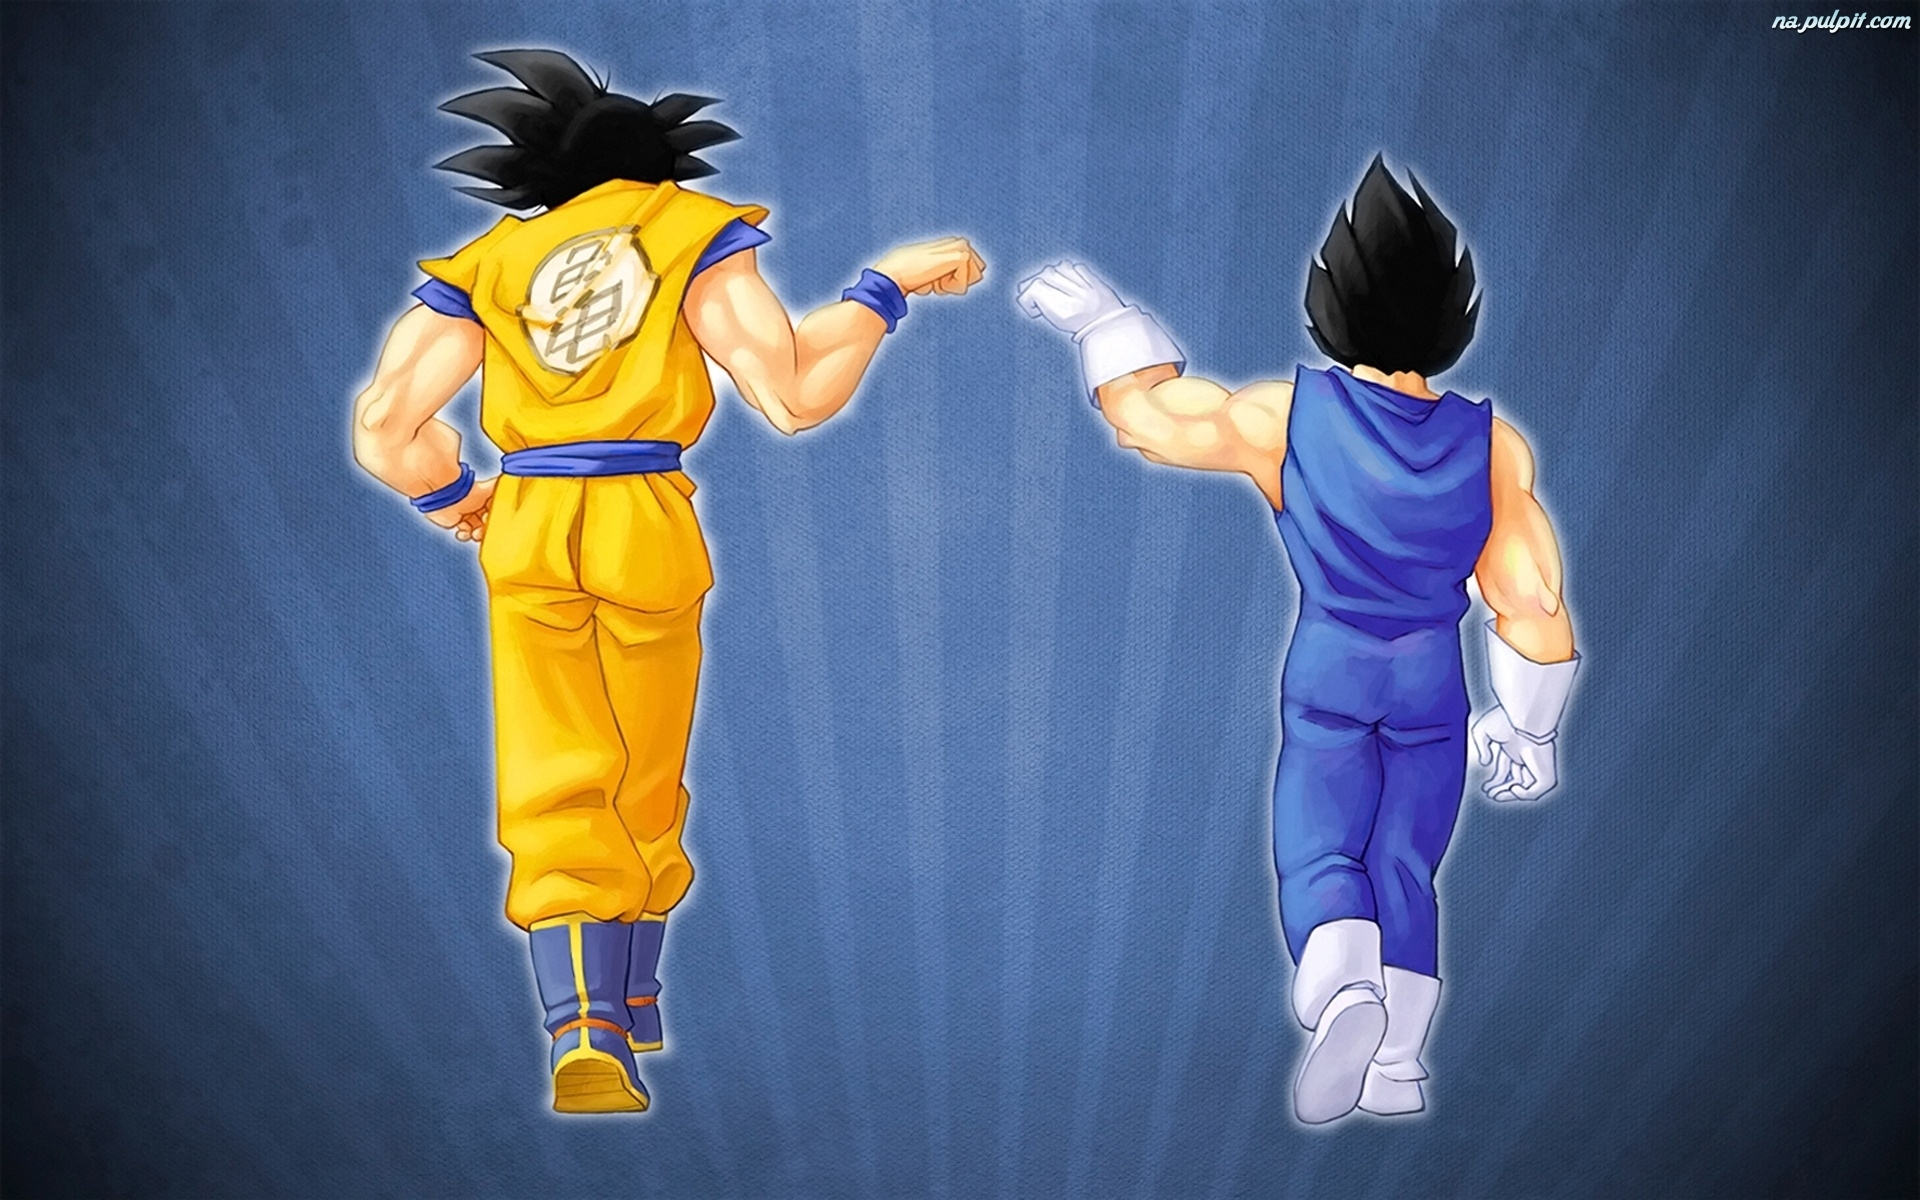 Vegeta, Dragon Ball Z, Son Goku